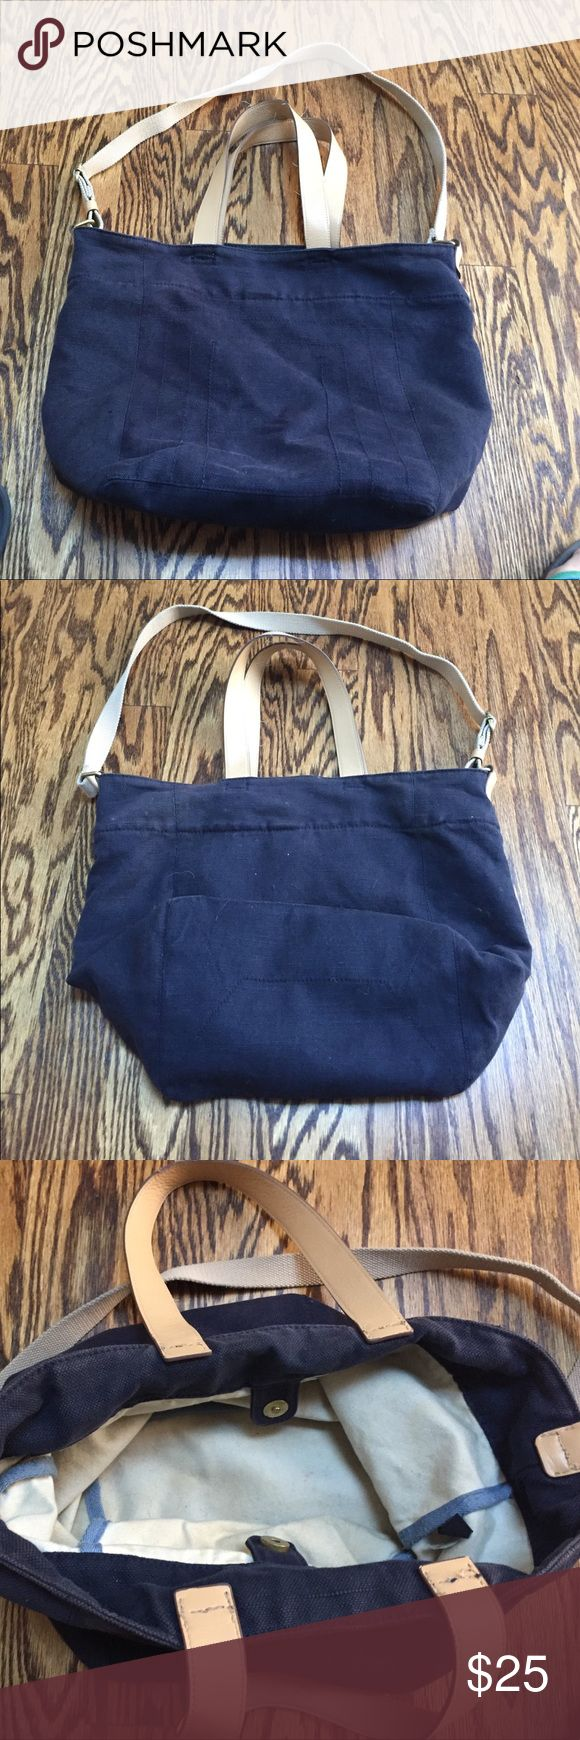 Blue GAP Tote Bag Used. Some wear and tear, but has a lot of life left in it. See pictures. GAP Bags Totes